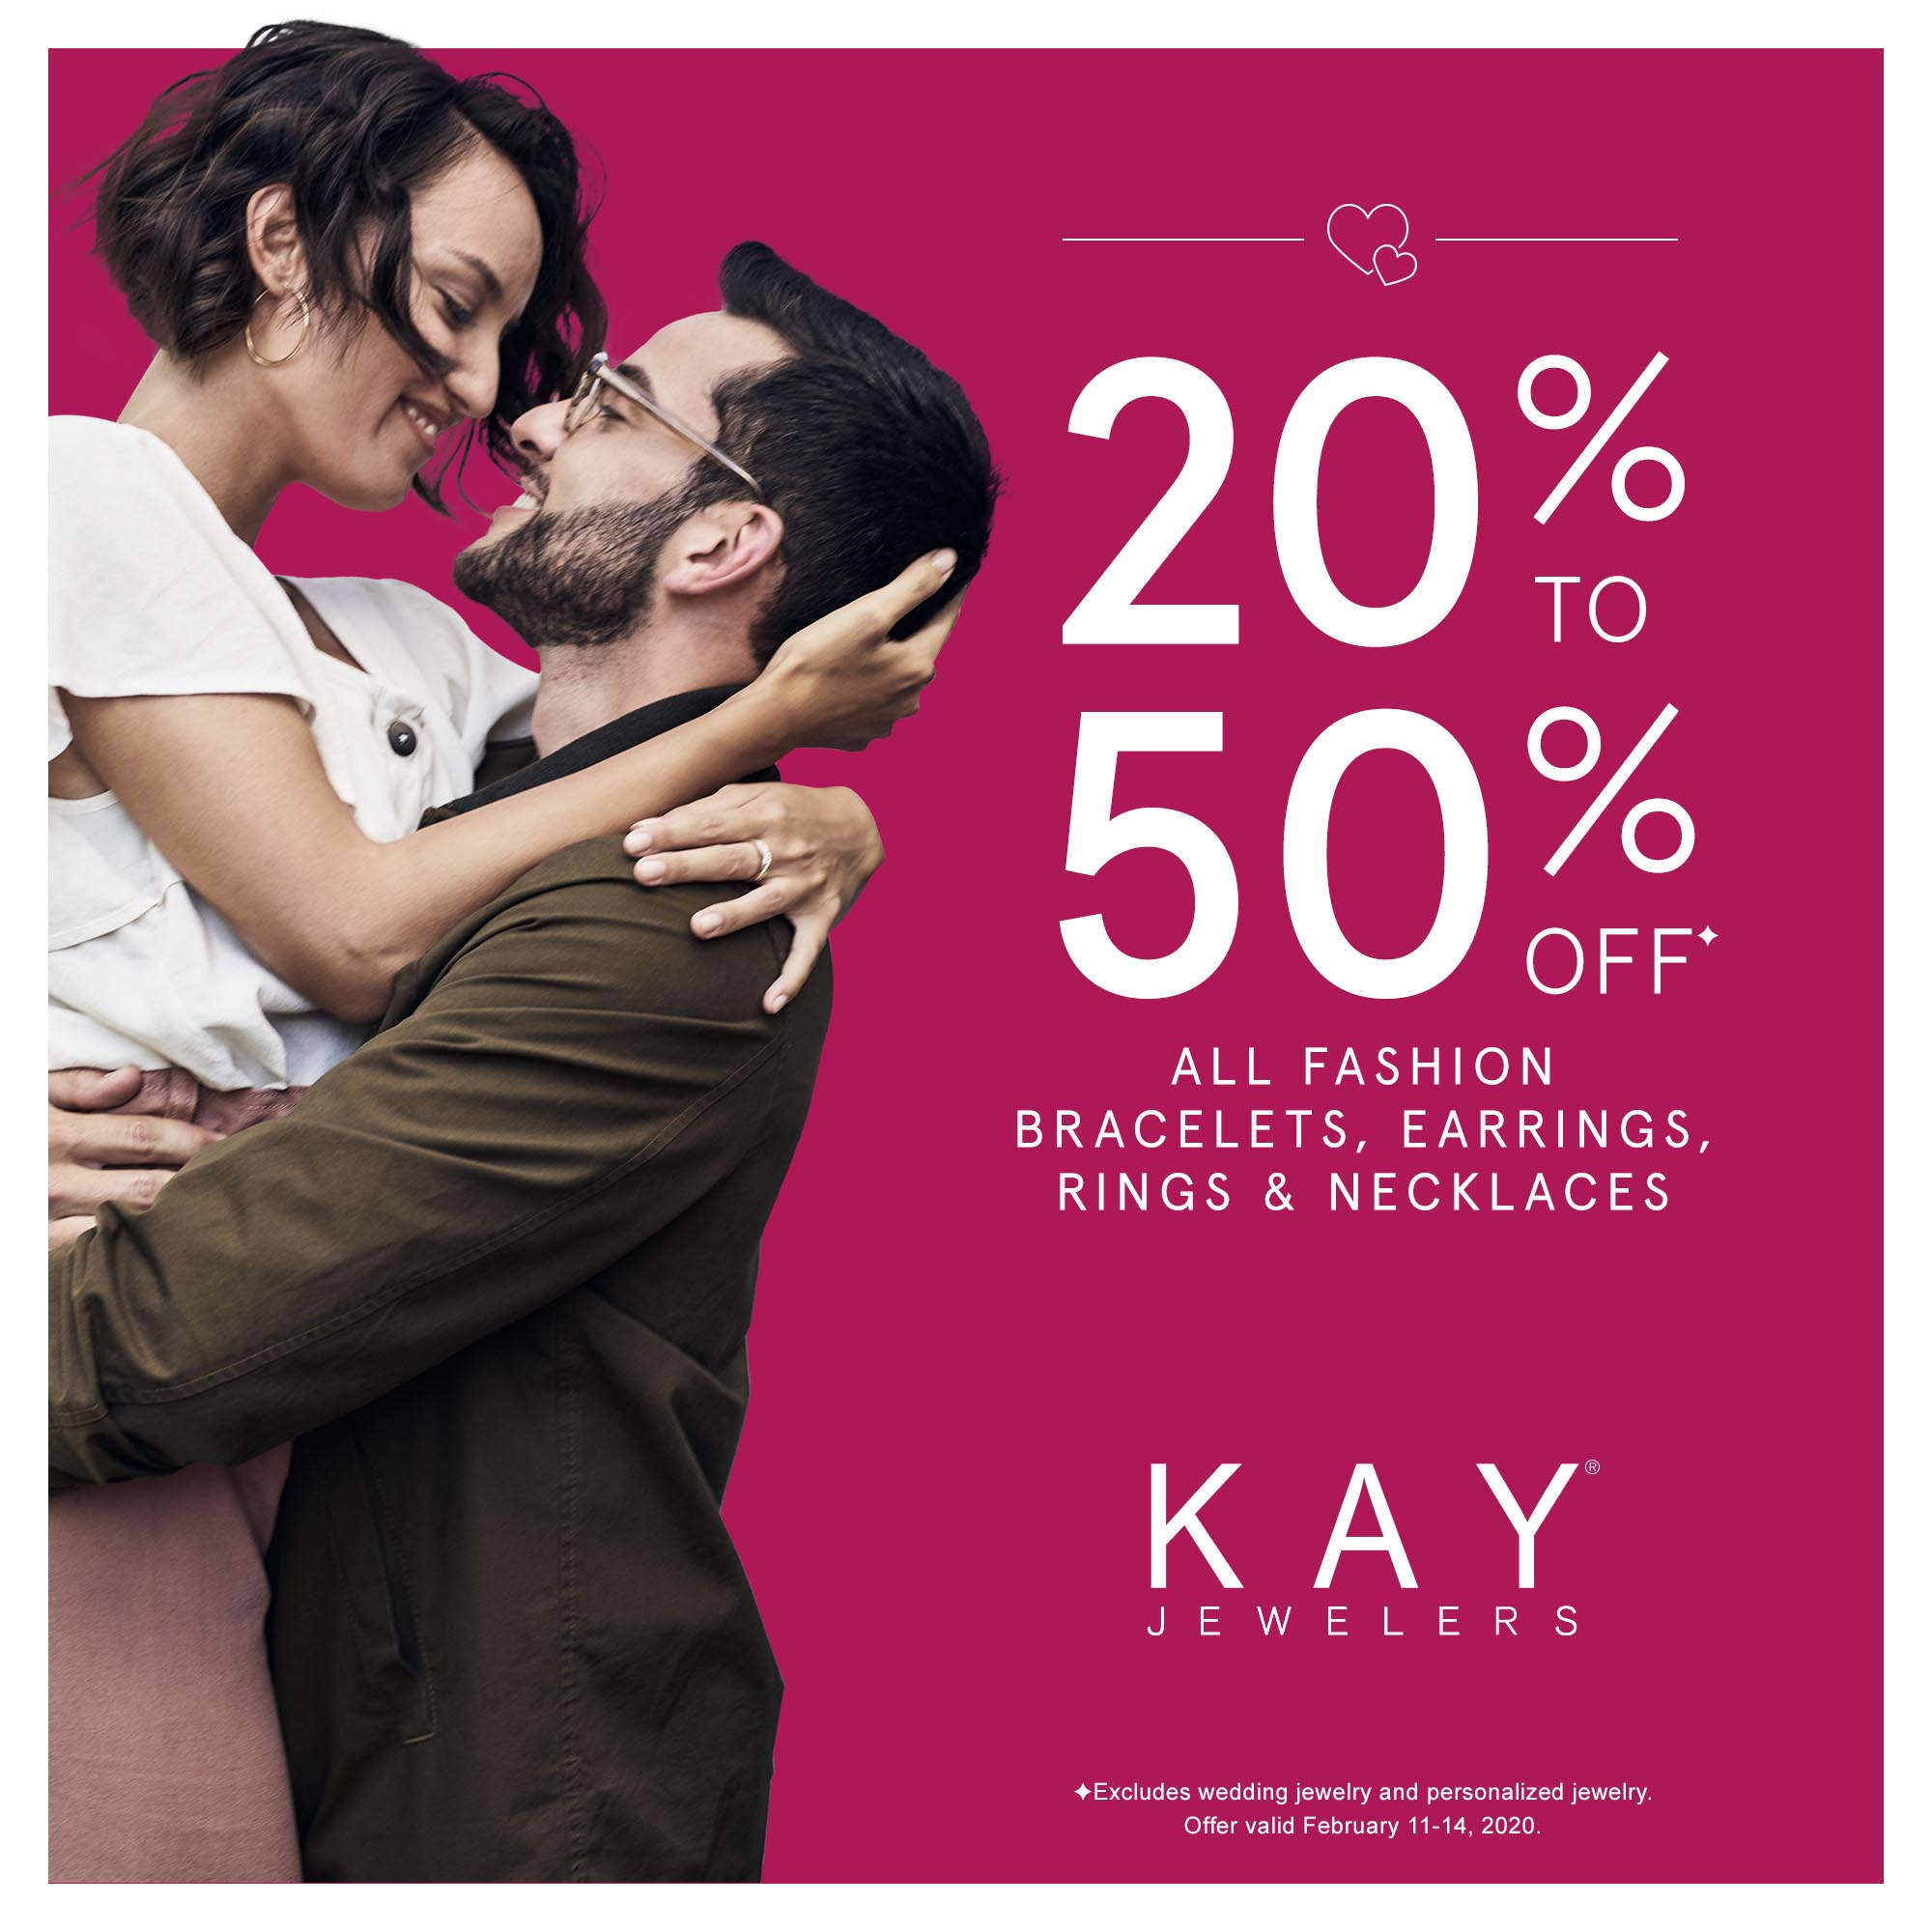 20-50% Off* All Fashion! from Kay Jewelers